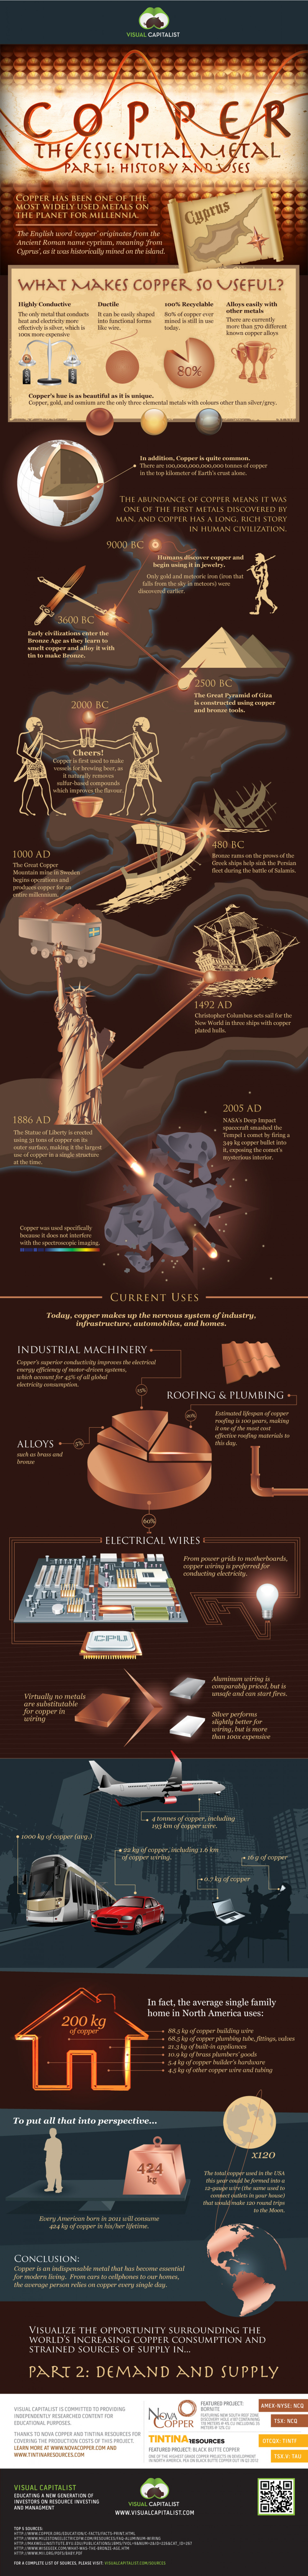 Copper - The Essential Metal (Part 1) Infographic